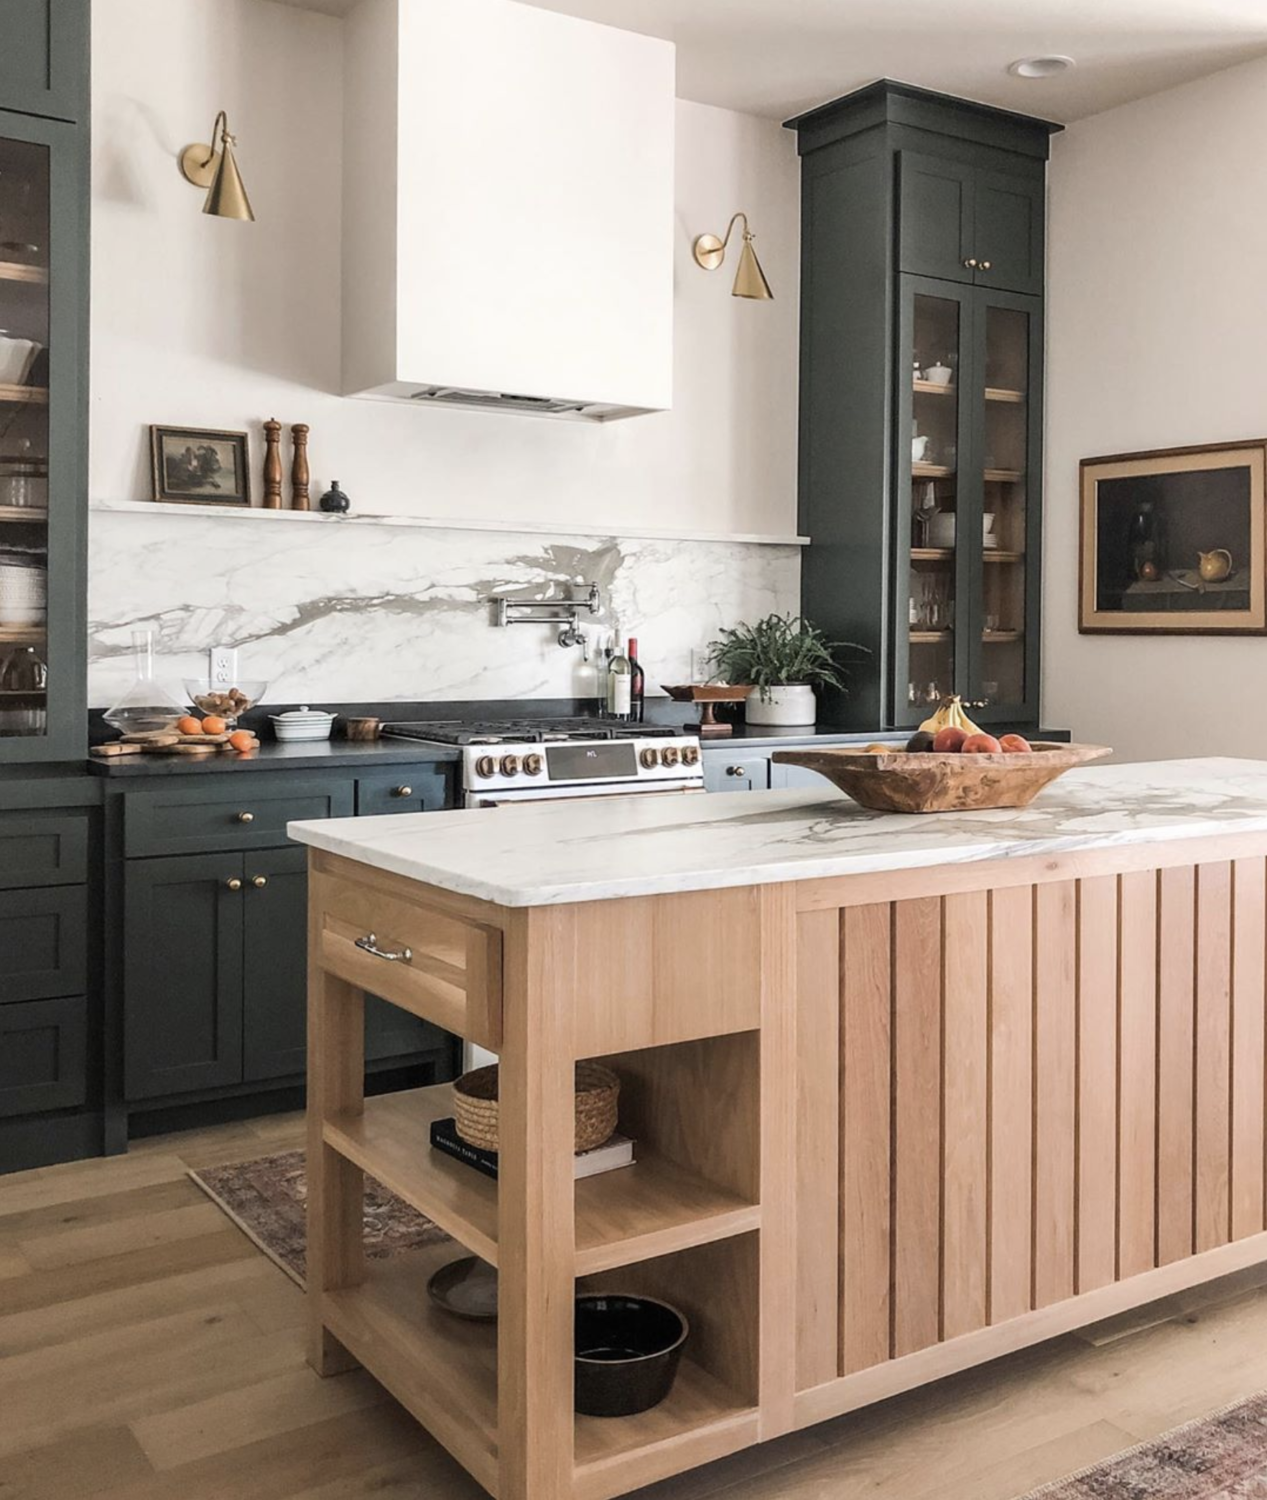 The Best Interior Design Trends For 2020 Kitchen Design Home